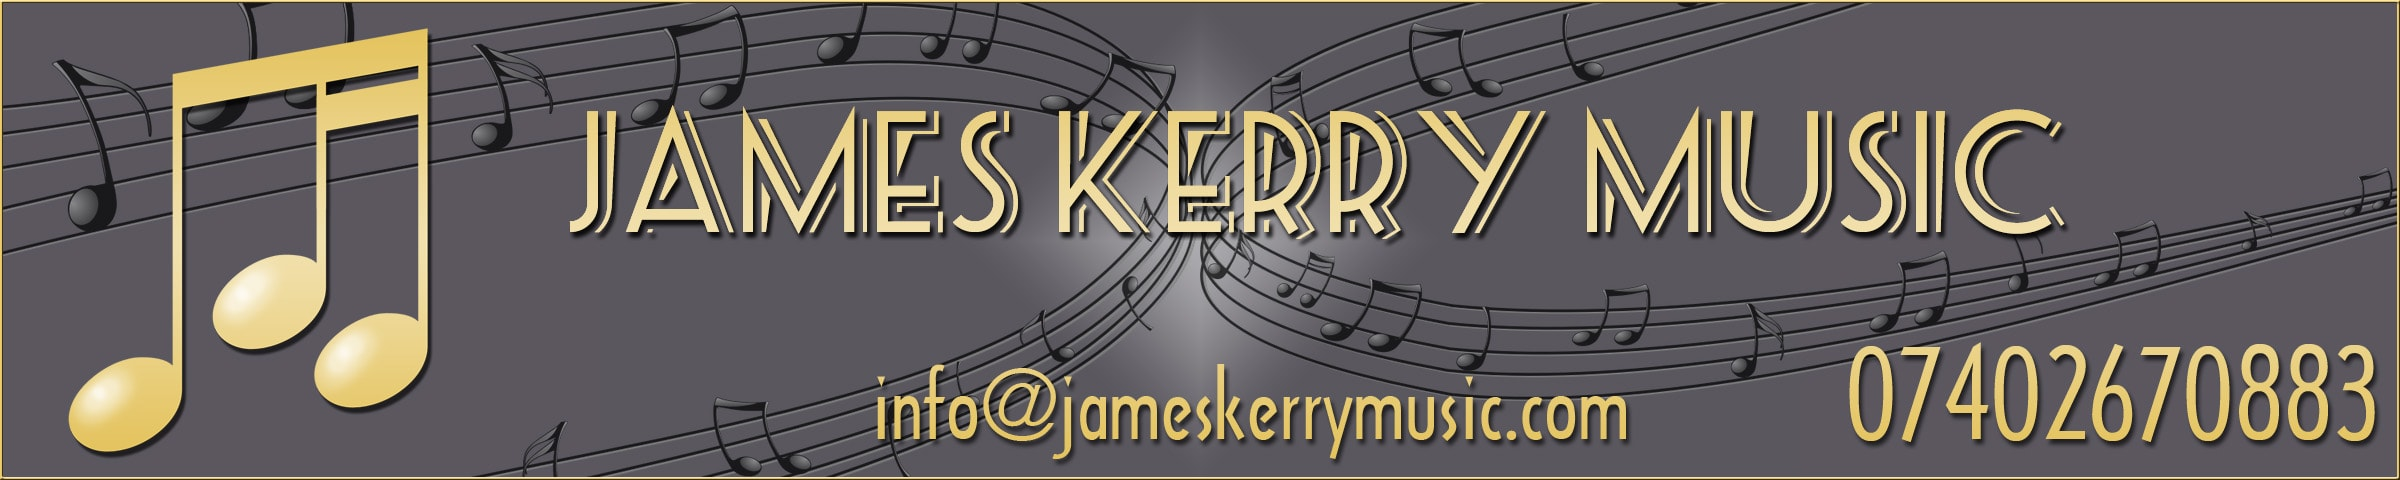 James Kerry Music